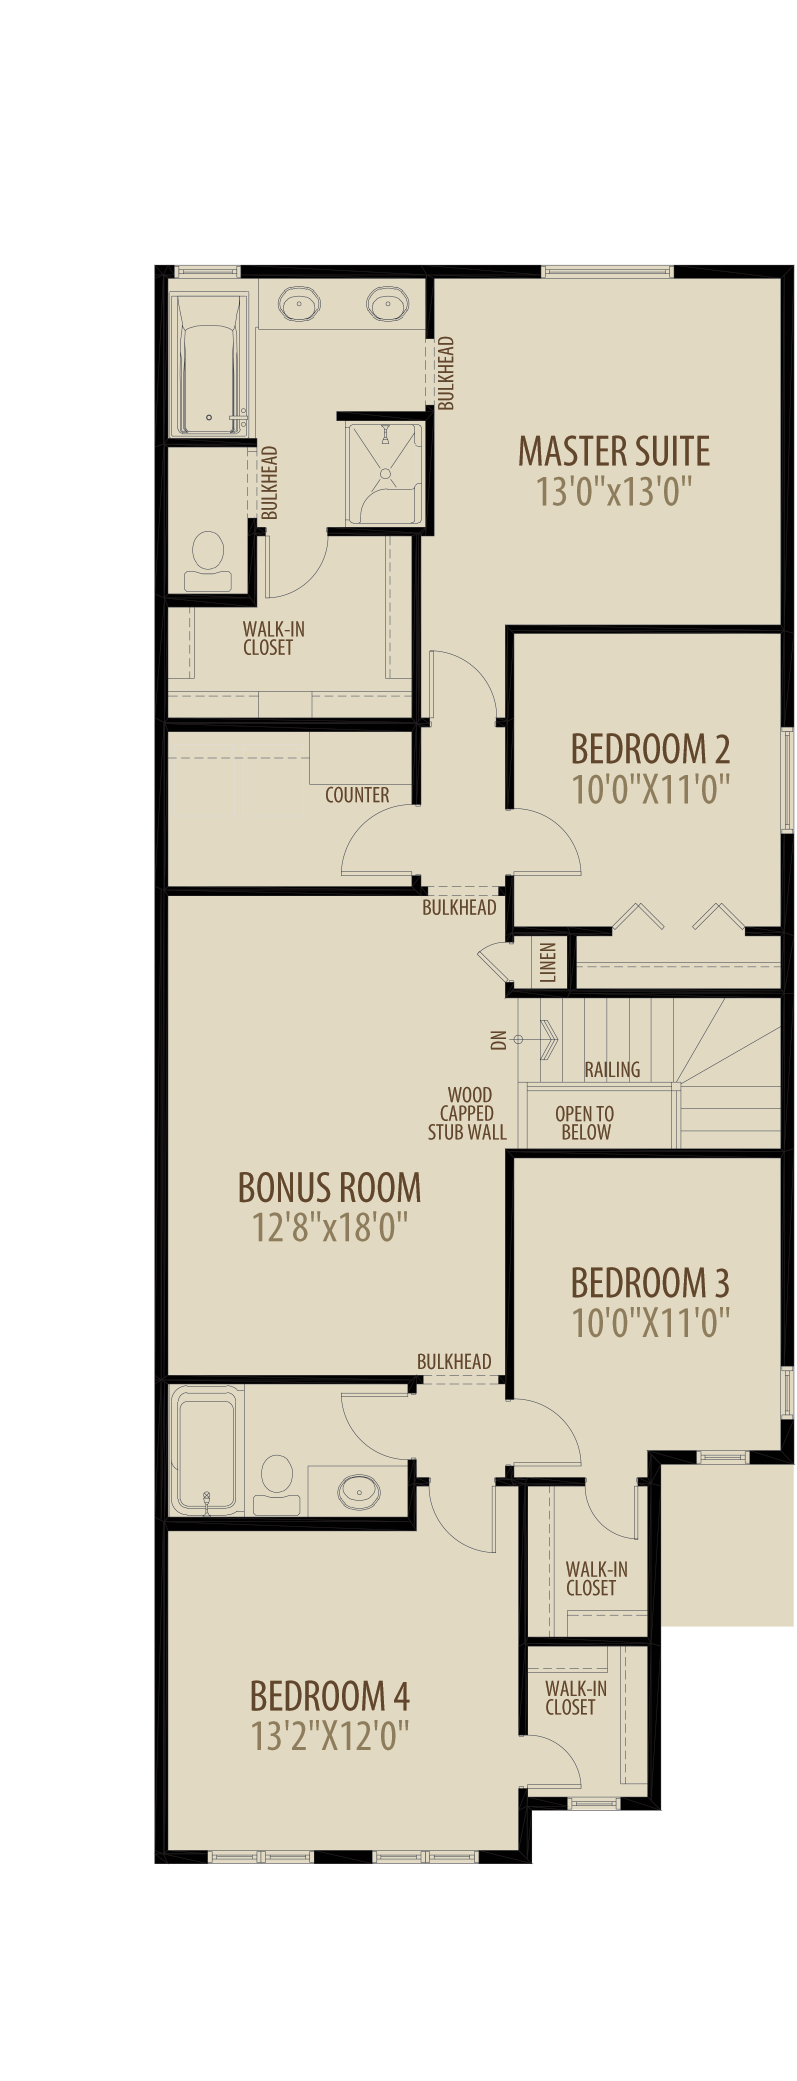 4th Bed Central Bonus Room 2 adds 236 sq ft